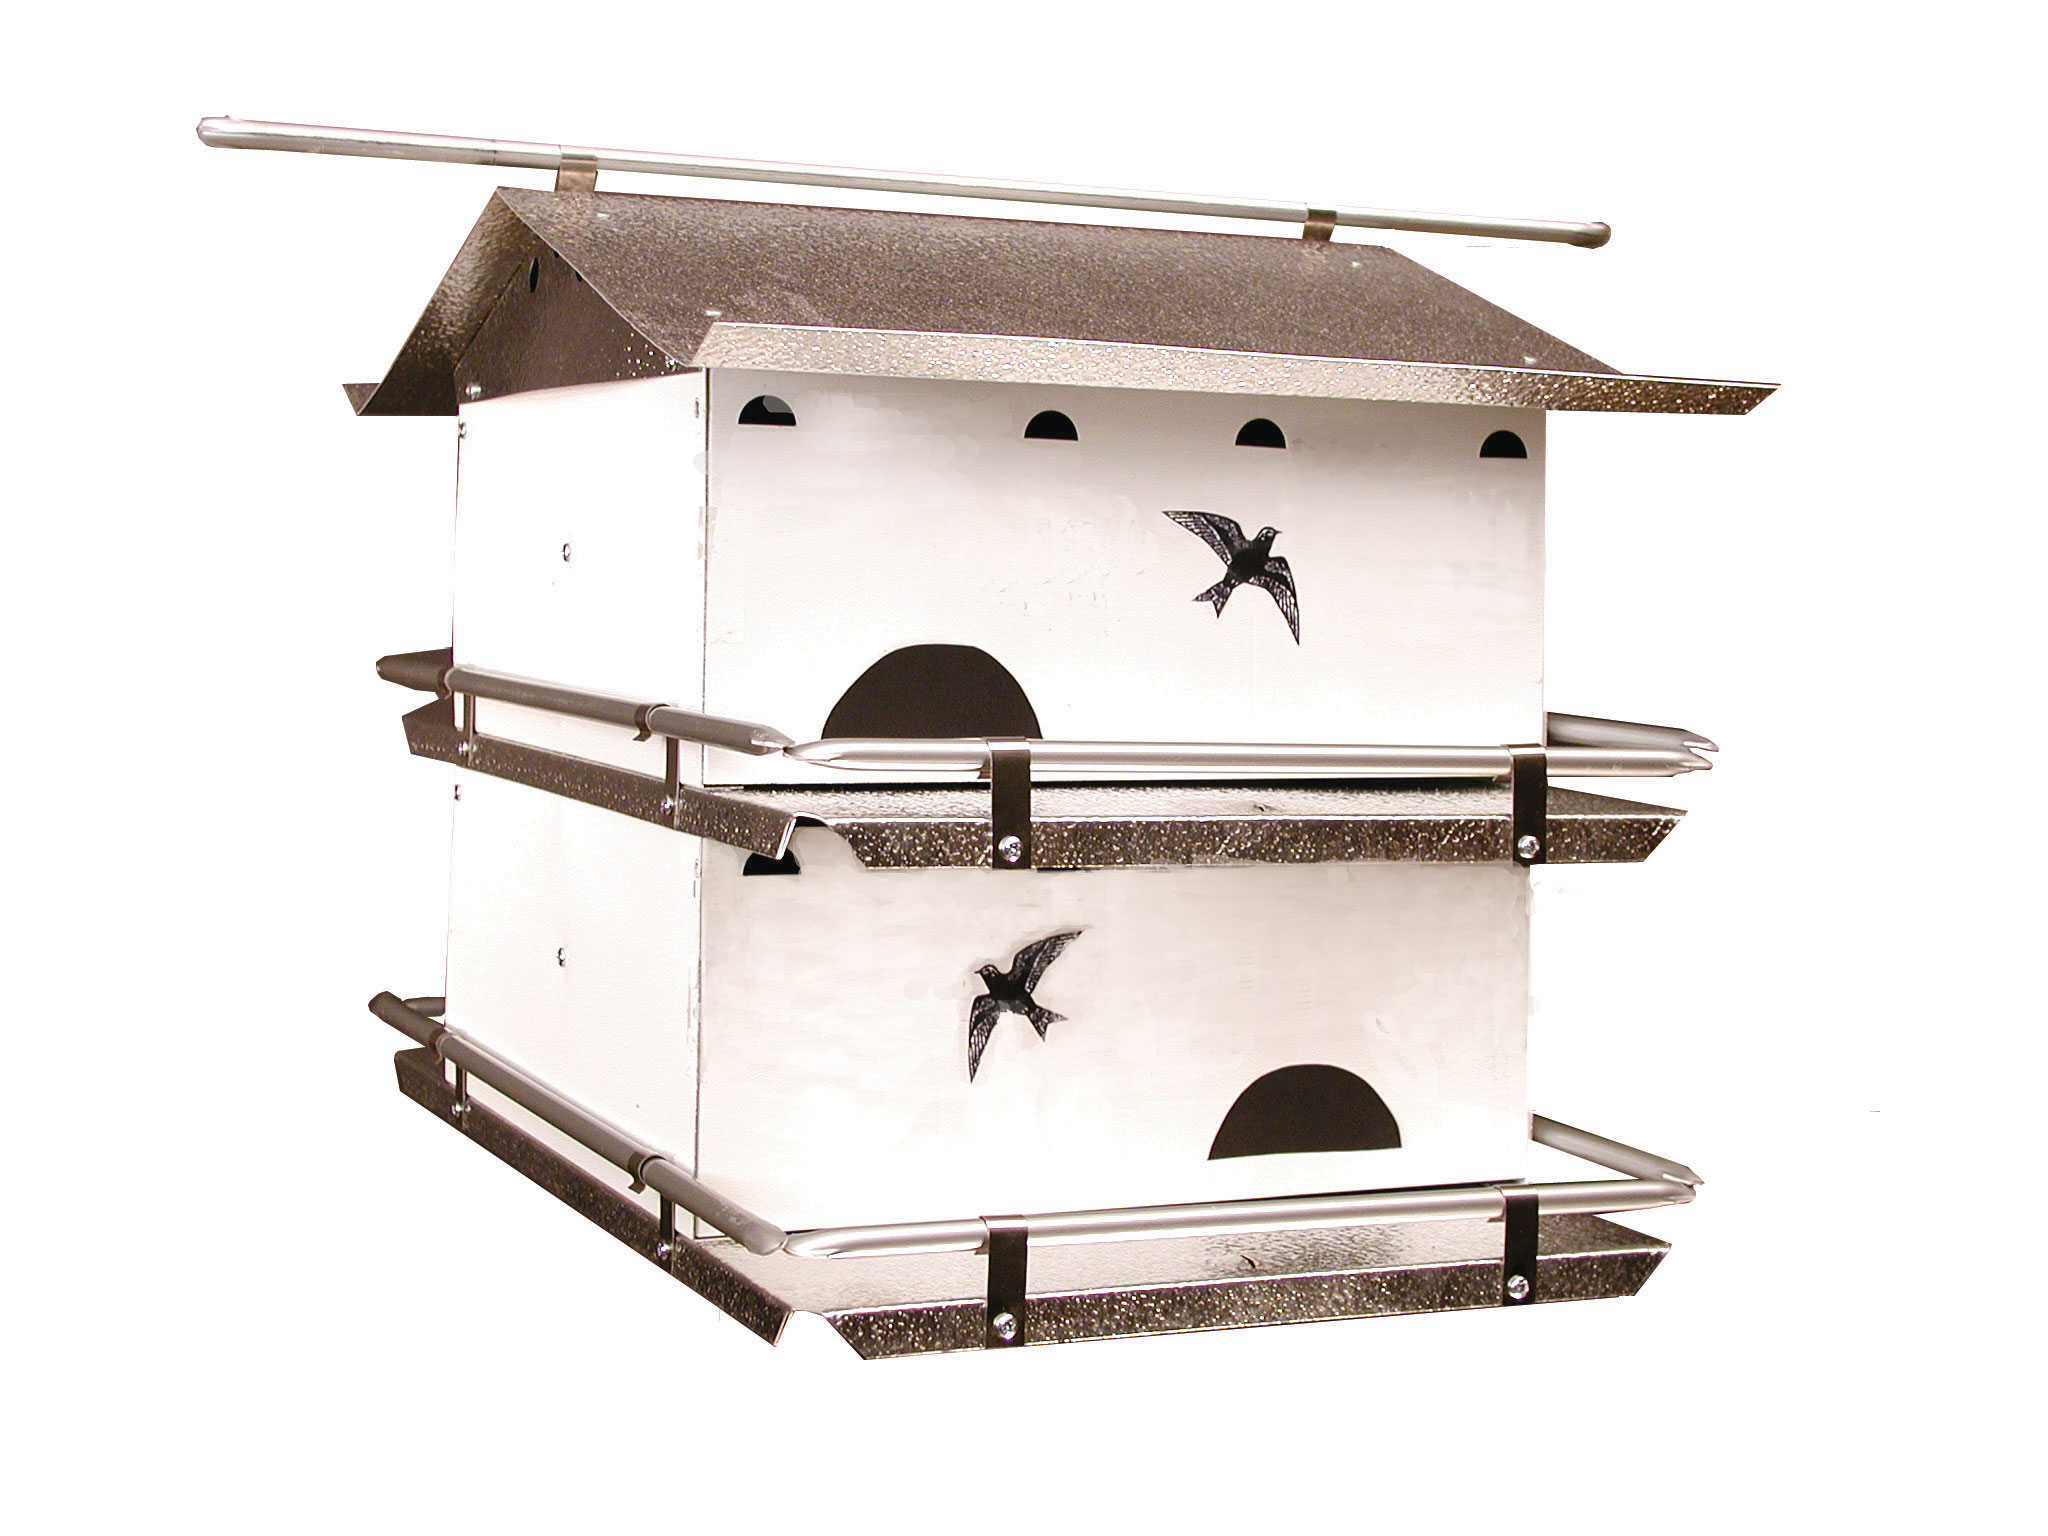 WatersEdge Suite Purple Martin House, 2 flr/4 room suite